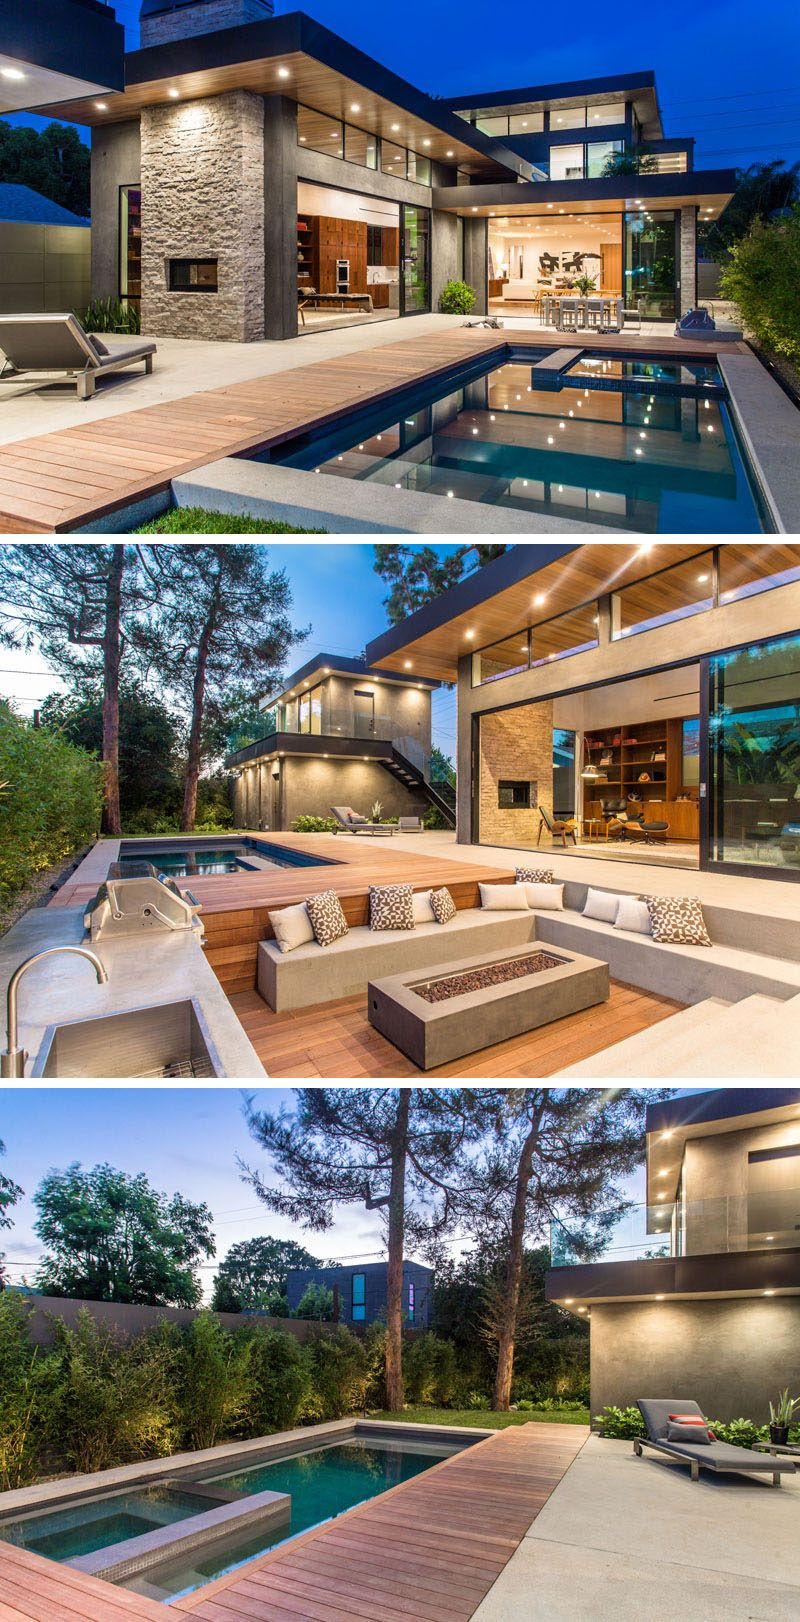 A new contemporary home arrives on this